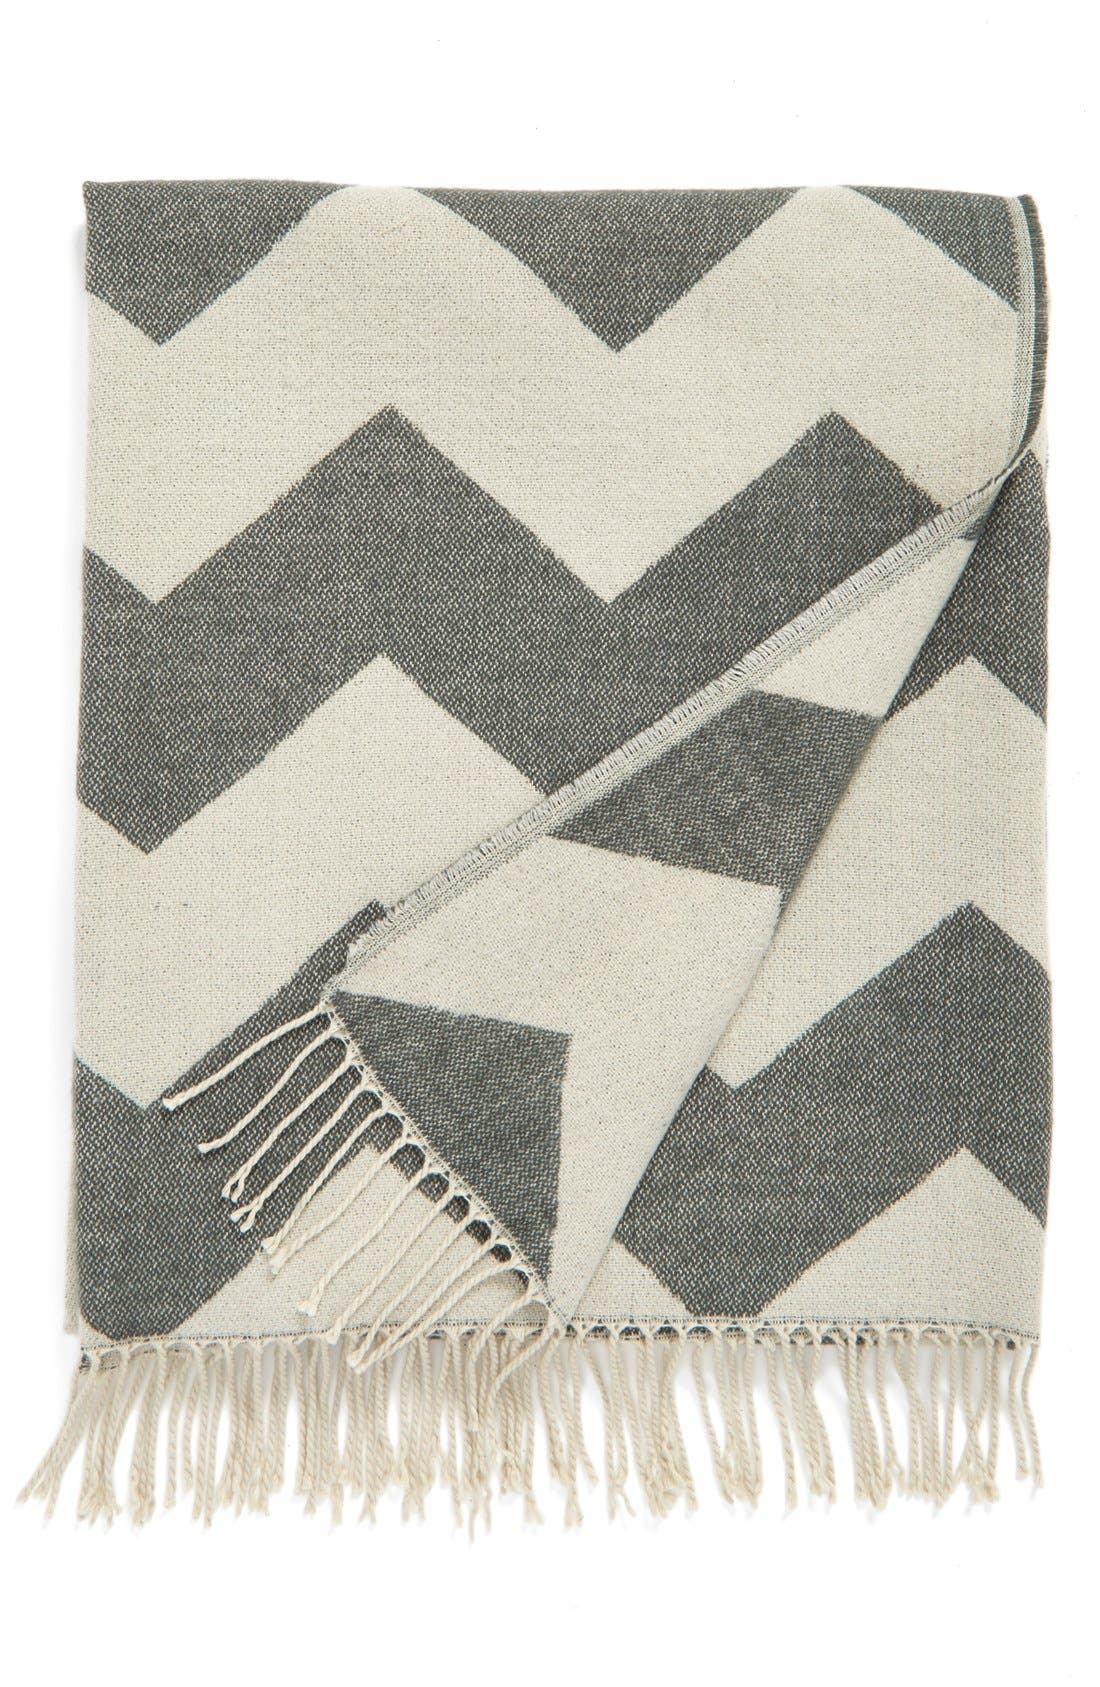 Alternate Image 1 Selected - Levtex Chevron Throw Blanket